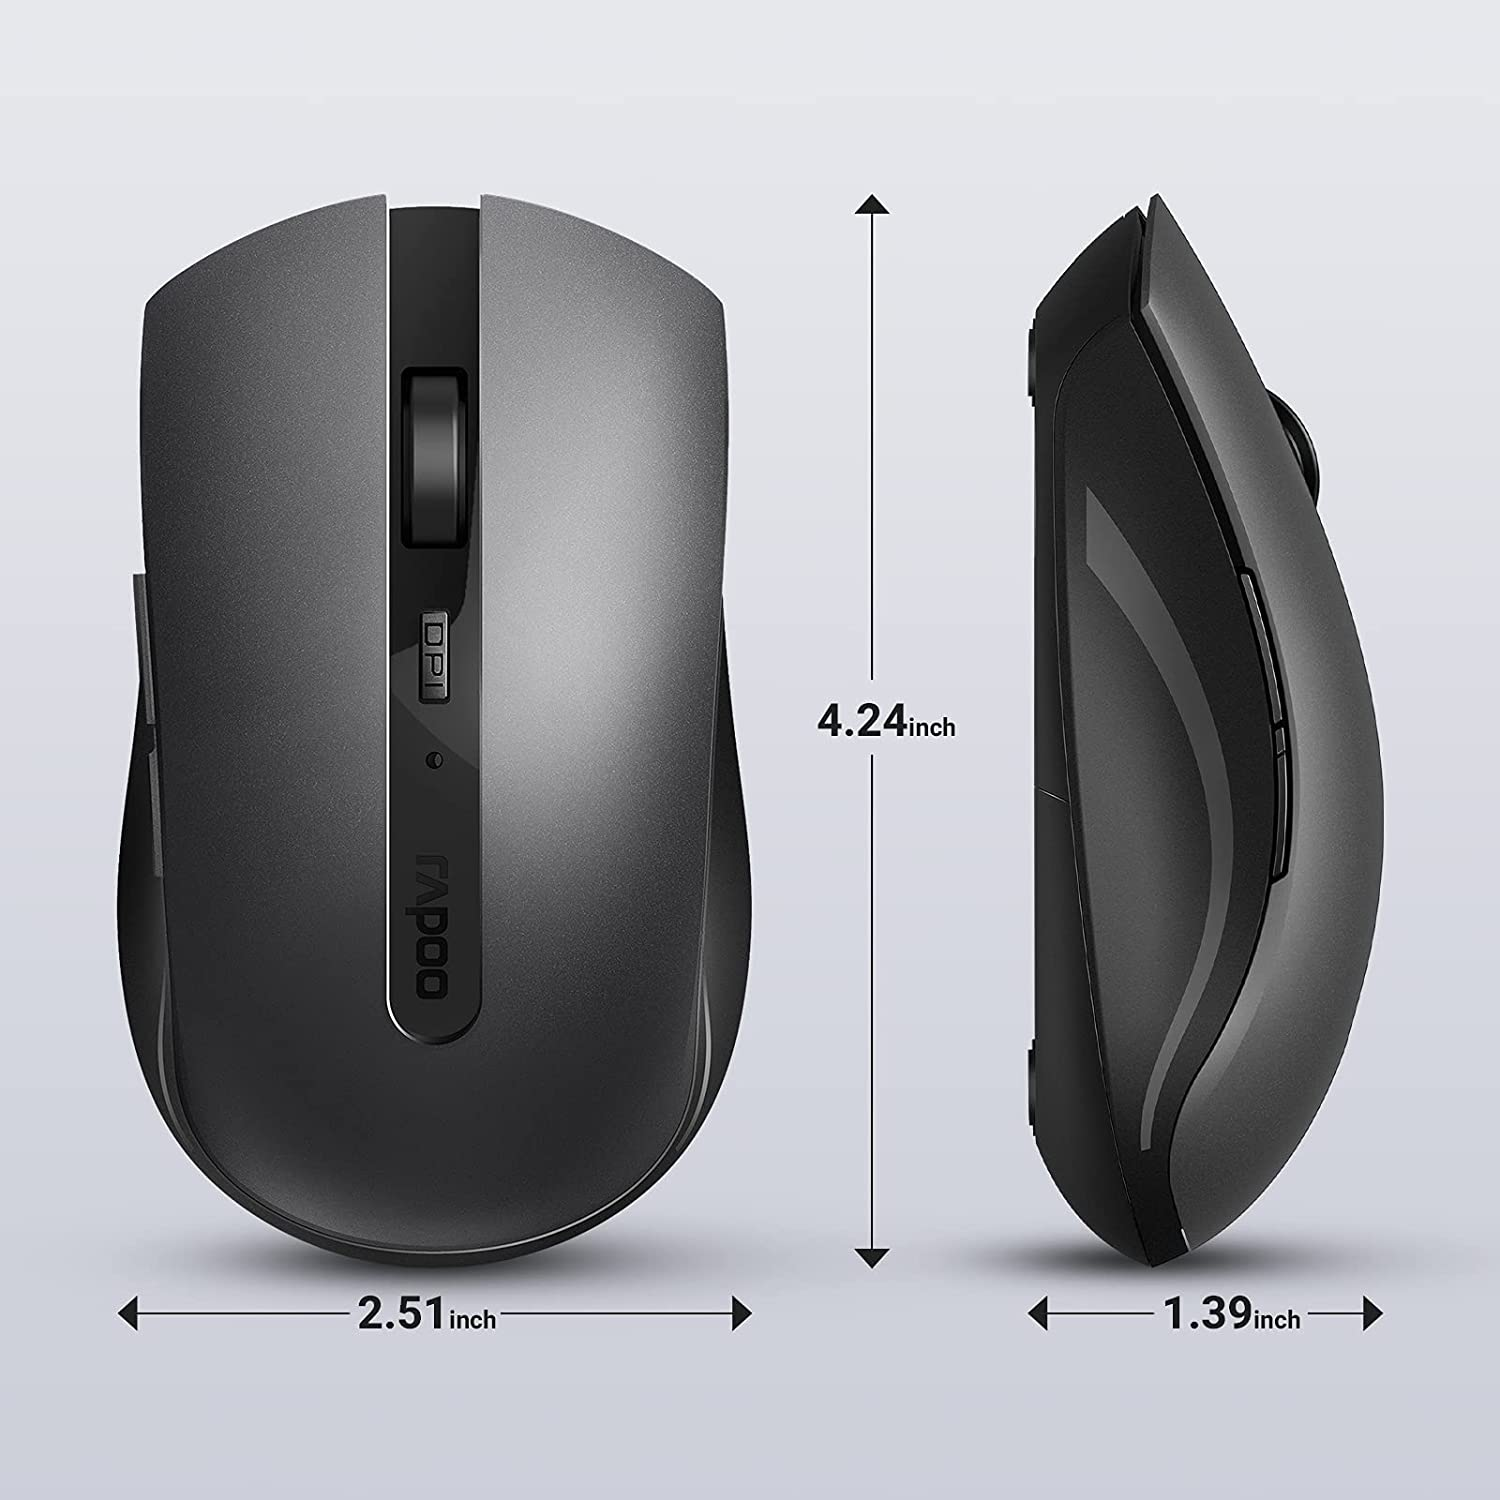 RAPOO 7200M Wireless Mouse, Multi-Mode Silent Mouse, Ergonomic Optical Mouse, 4 Adjustable DPI, Bluetooth Office Mouse, Portable Light Computer Mice for Notebook, PC, Laptop, Computer, Grey